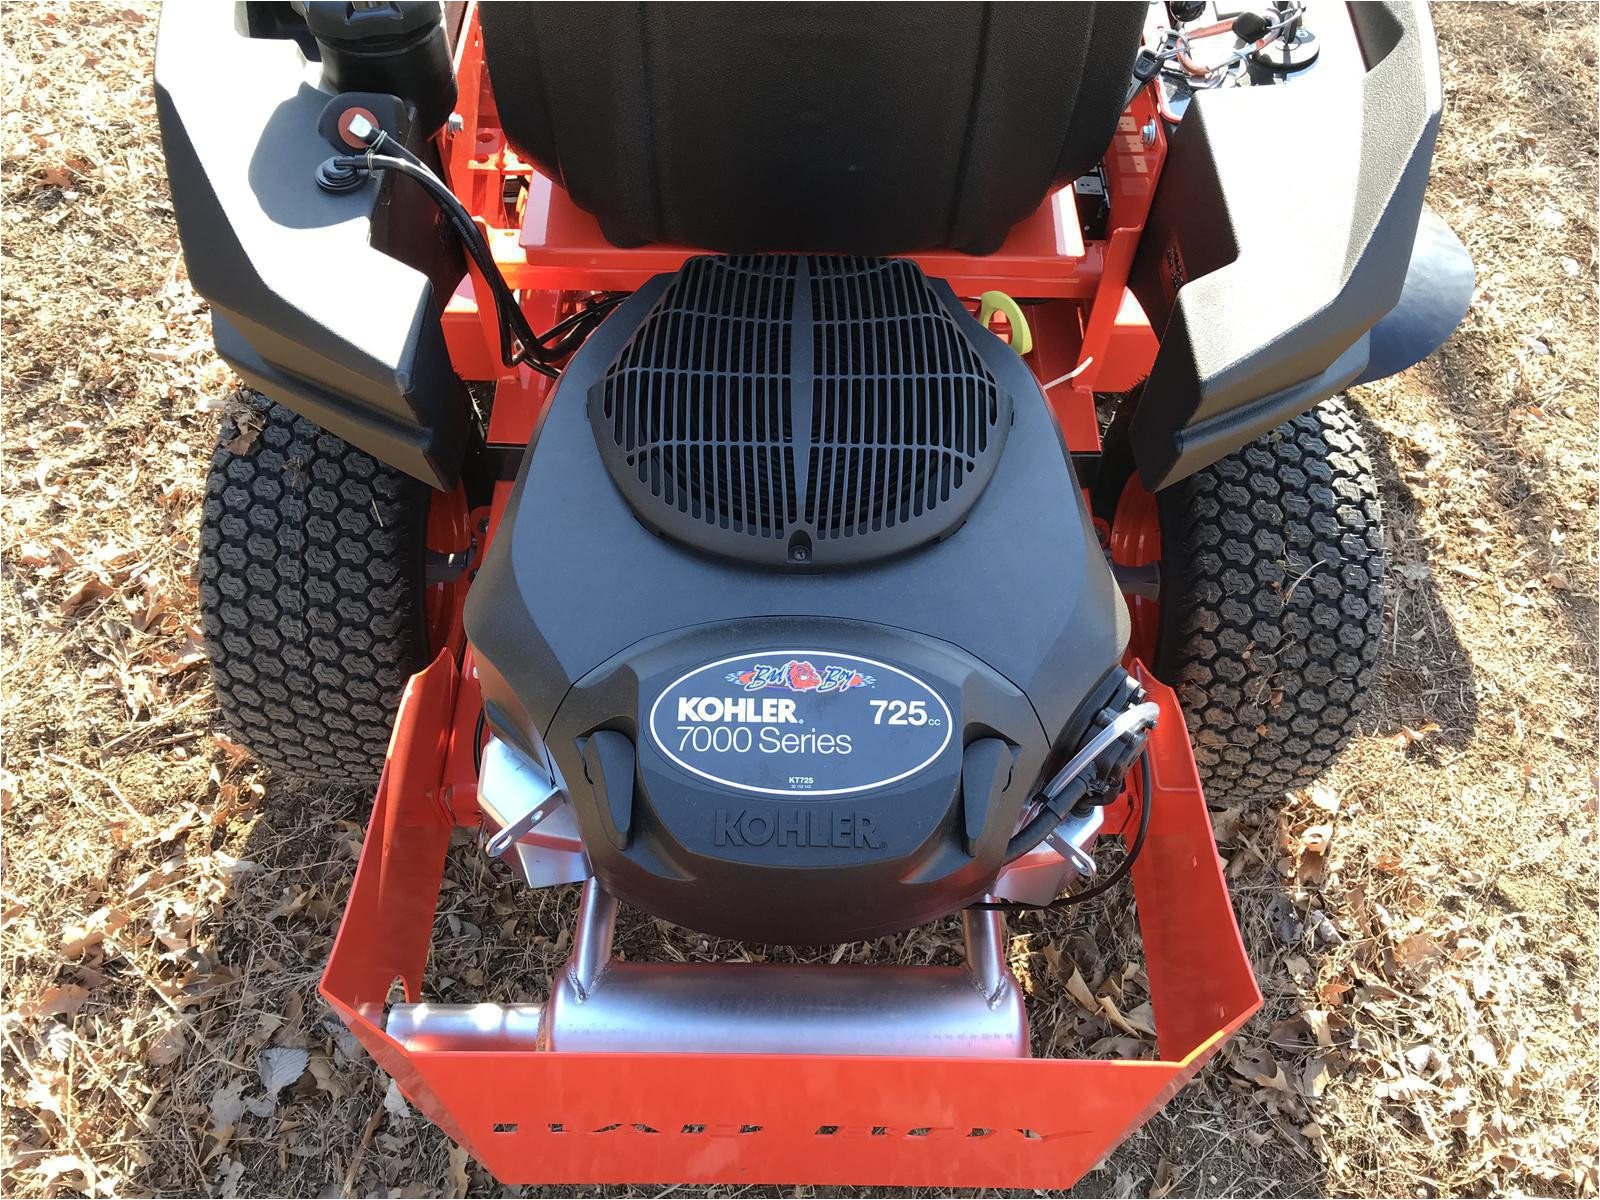 Bad Boy Riding Lawn Mowers 2018 Bad Boy Mz 42 Kohler 725cc for Sale In Independence Ks